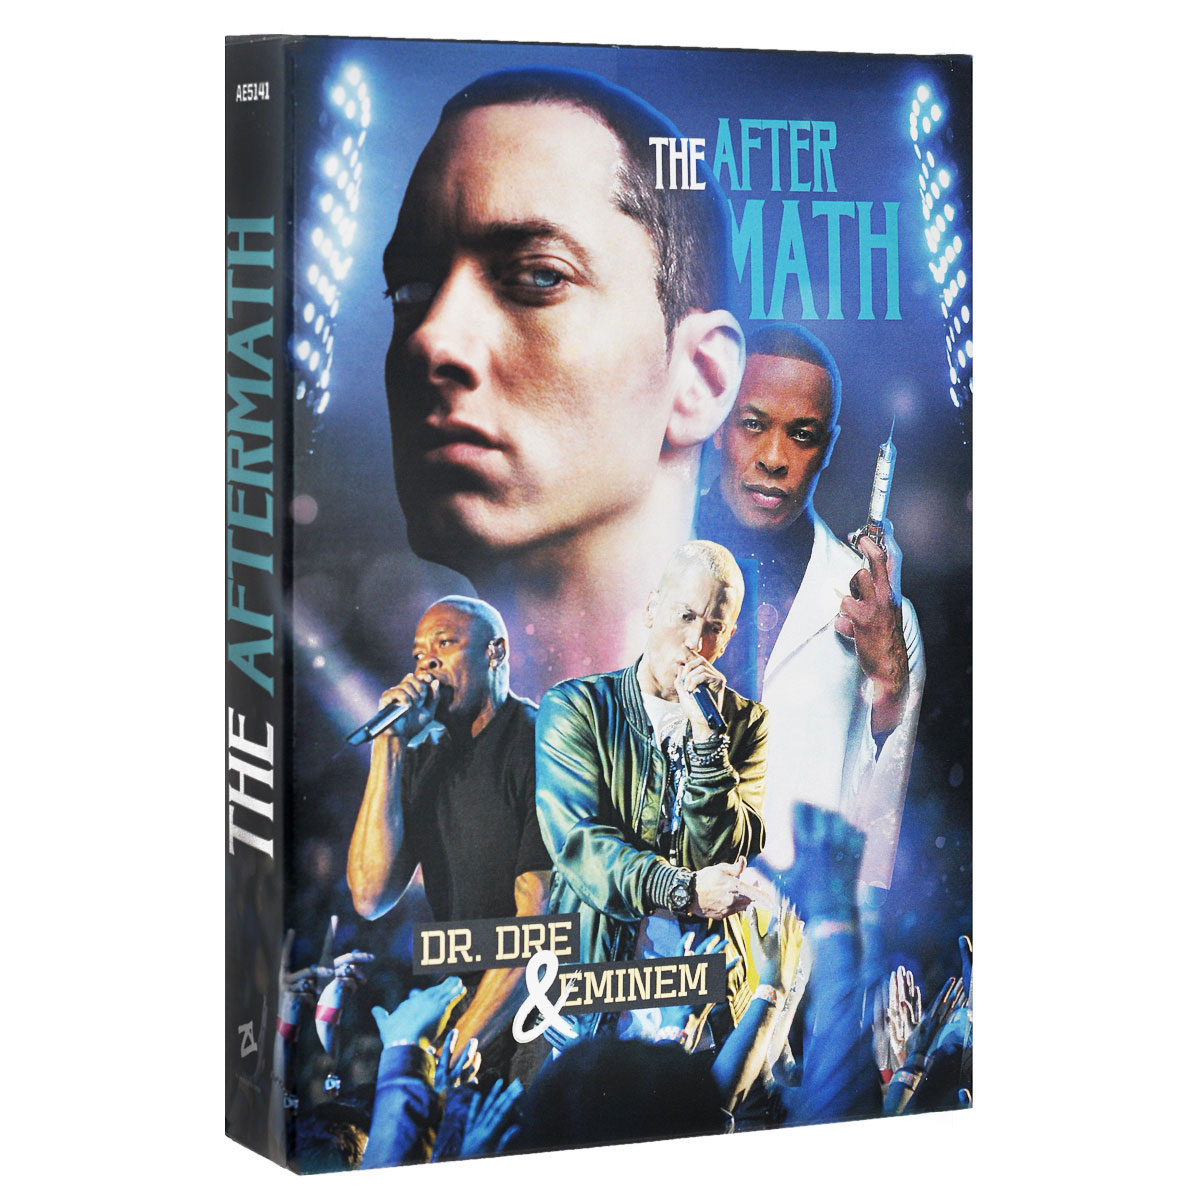 Dr. Dre & Eminem. The After Math (2 DVD) eminem the marshall mathers lp 2